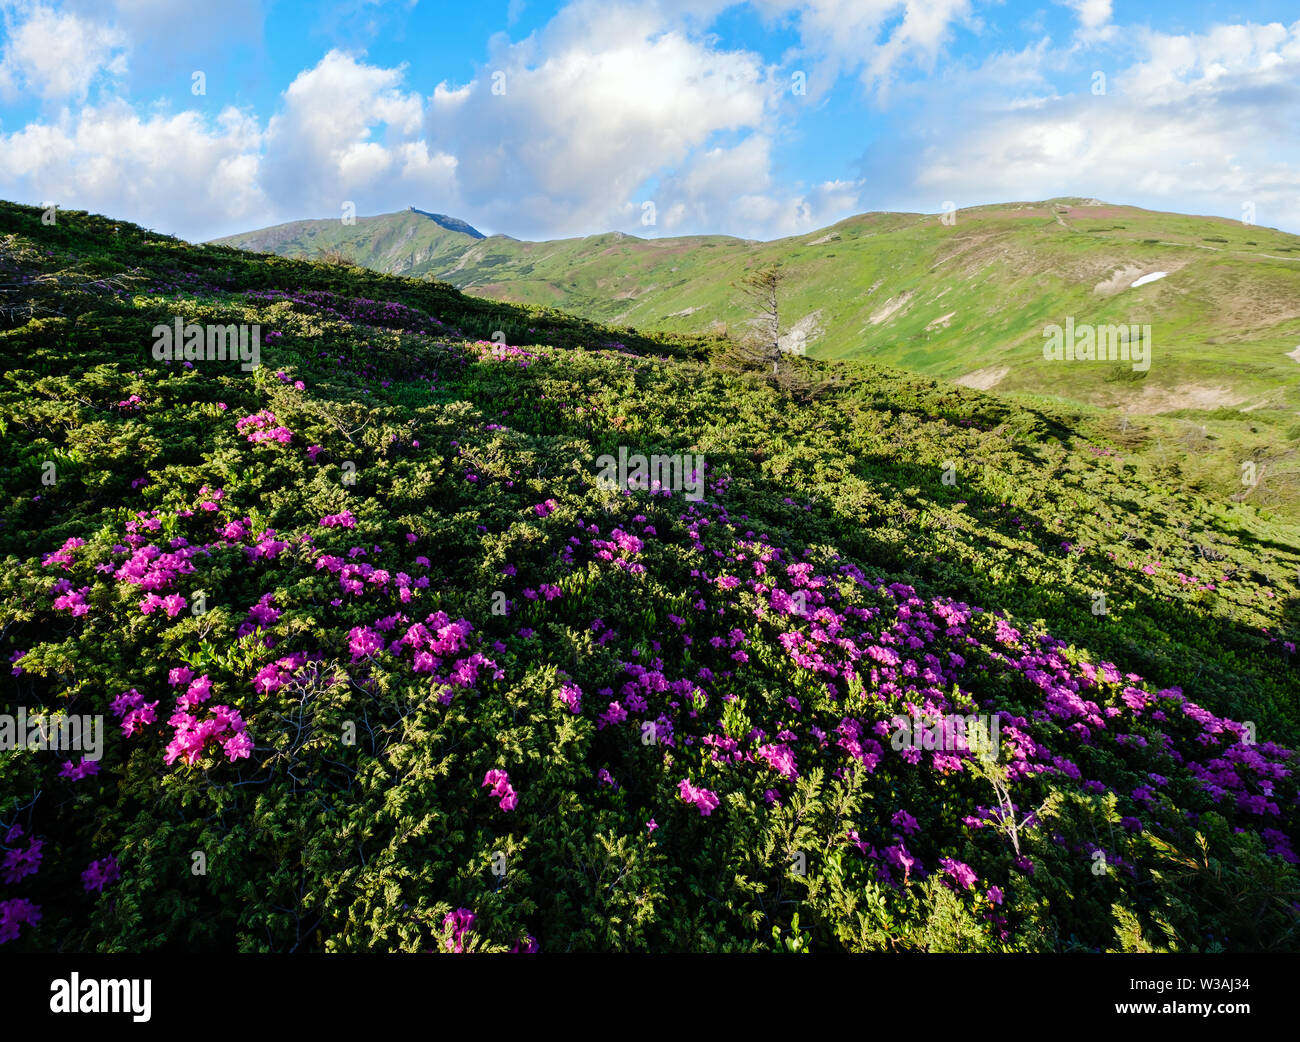 Pink rose rhododendron flowers on summer mountain slope. Carpathian, Chornohora, Ukraine. - Stock Image